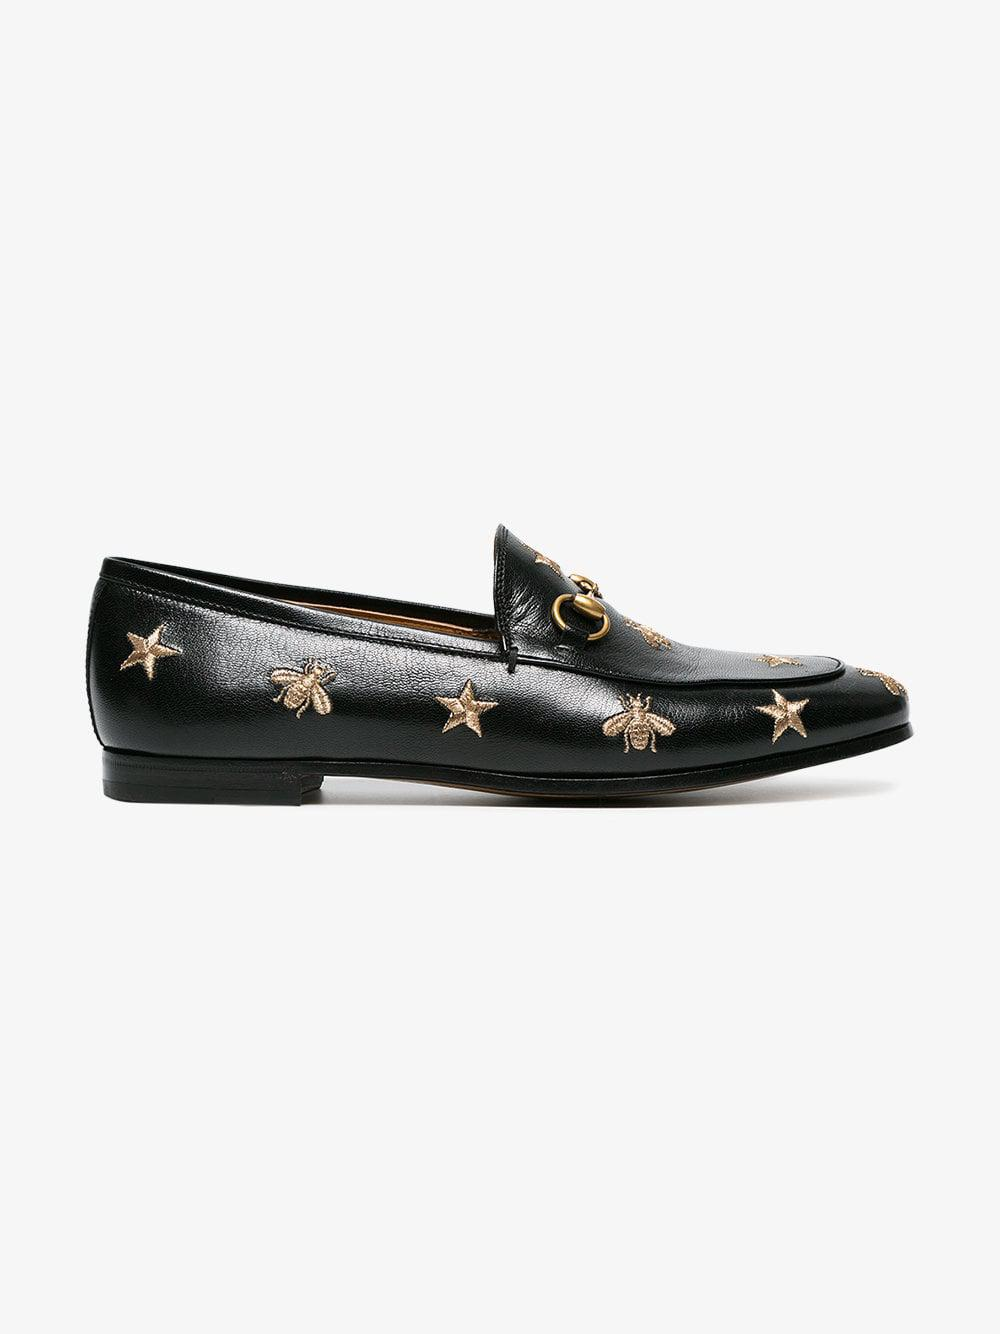 61f8b1f3313 Gucci Jordaan Embroidered Leather Loafer in Black - Lyst